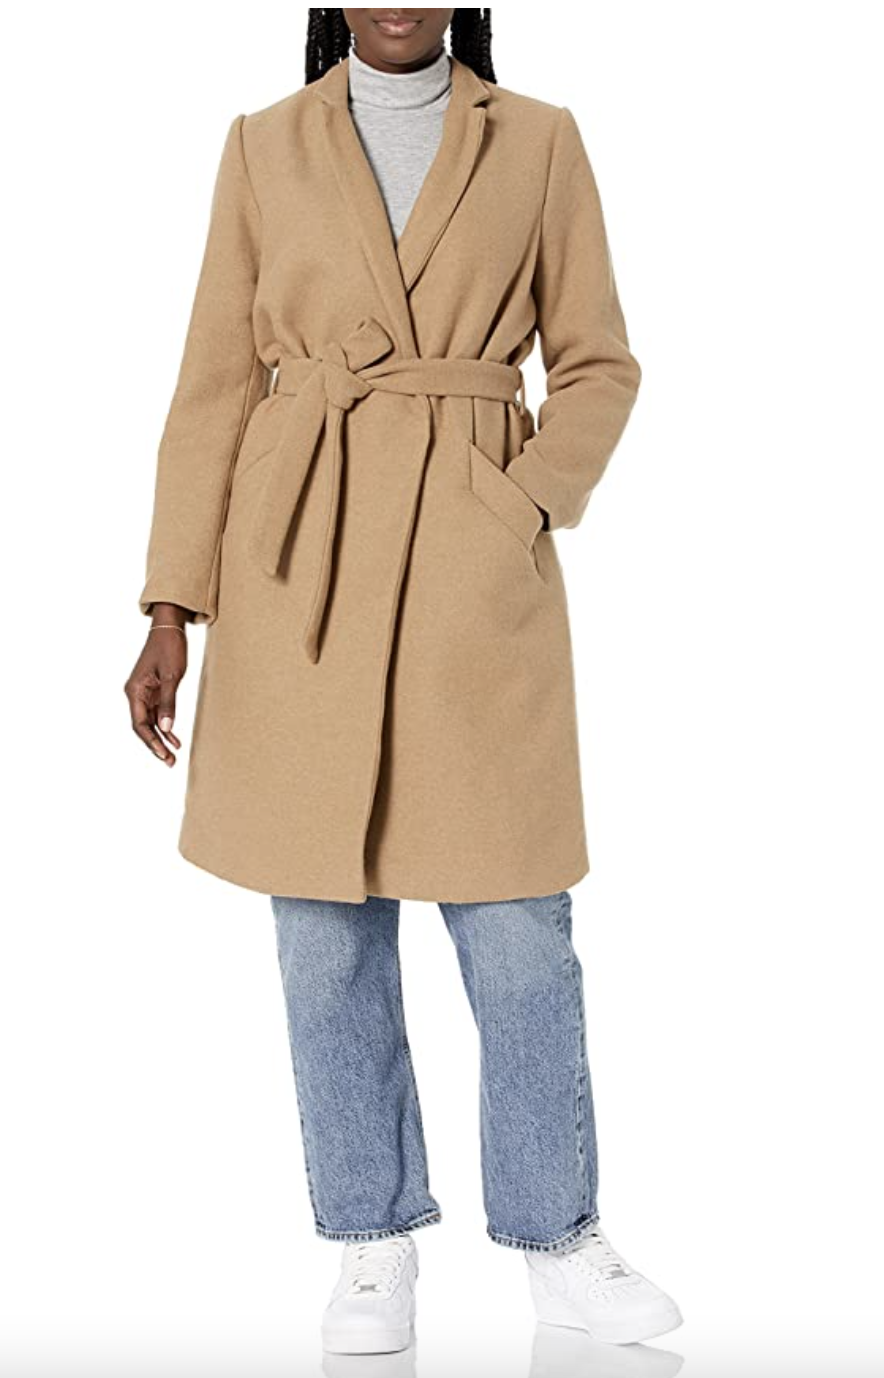 model wearing grey turtleneck, jeans, white sneakers, and Daily Ritual Wool Blend Belted Coat in beige